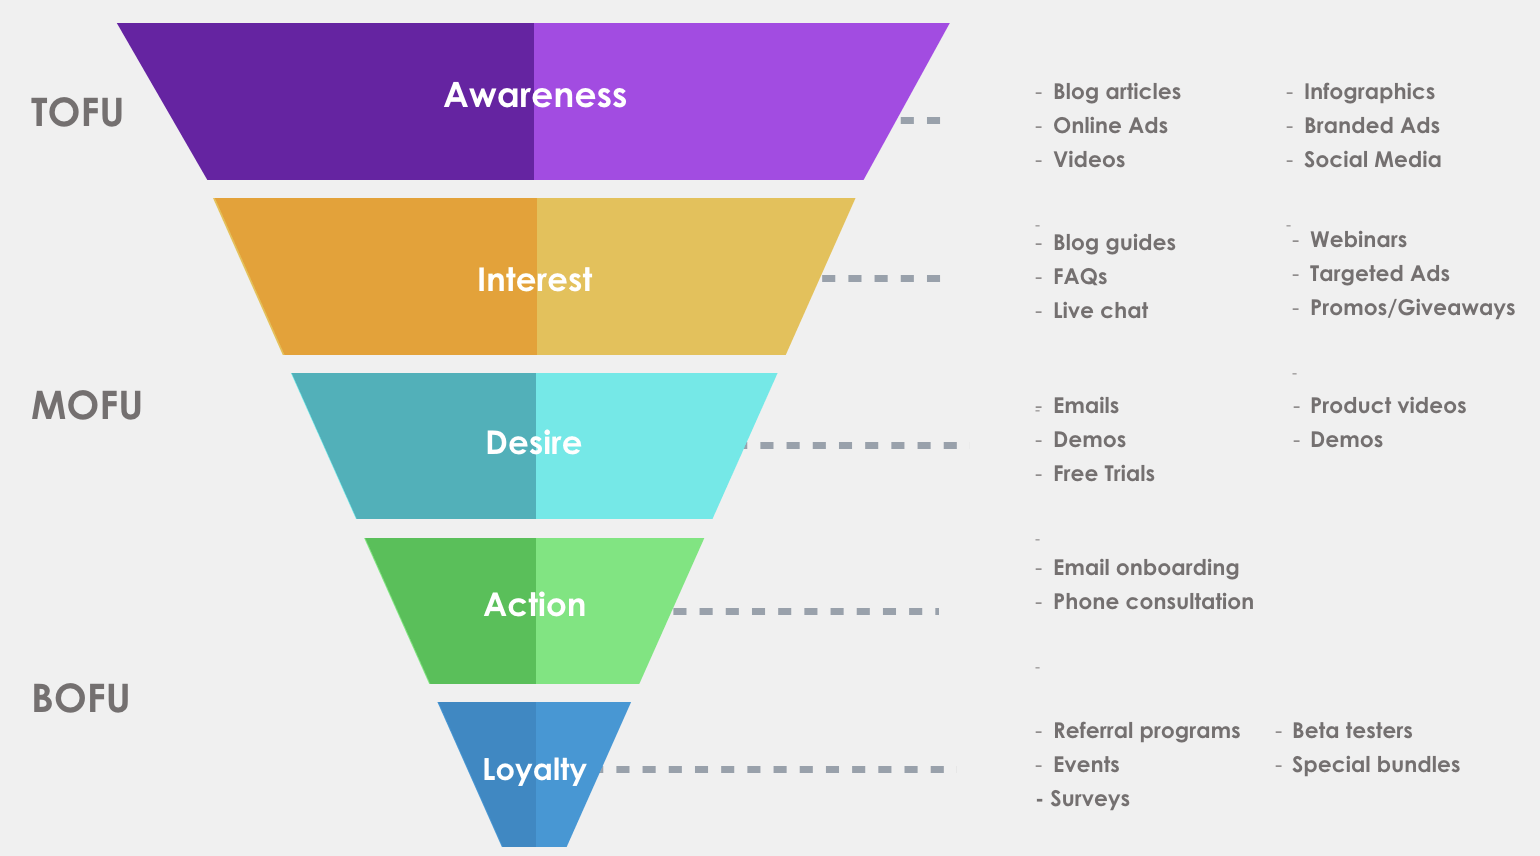 marketing funnel and buyer jorney alignment